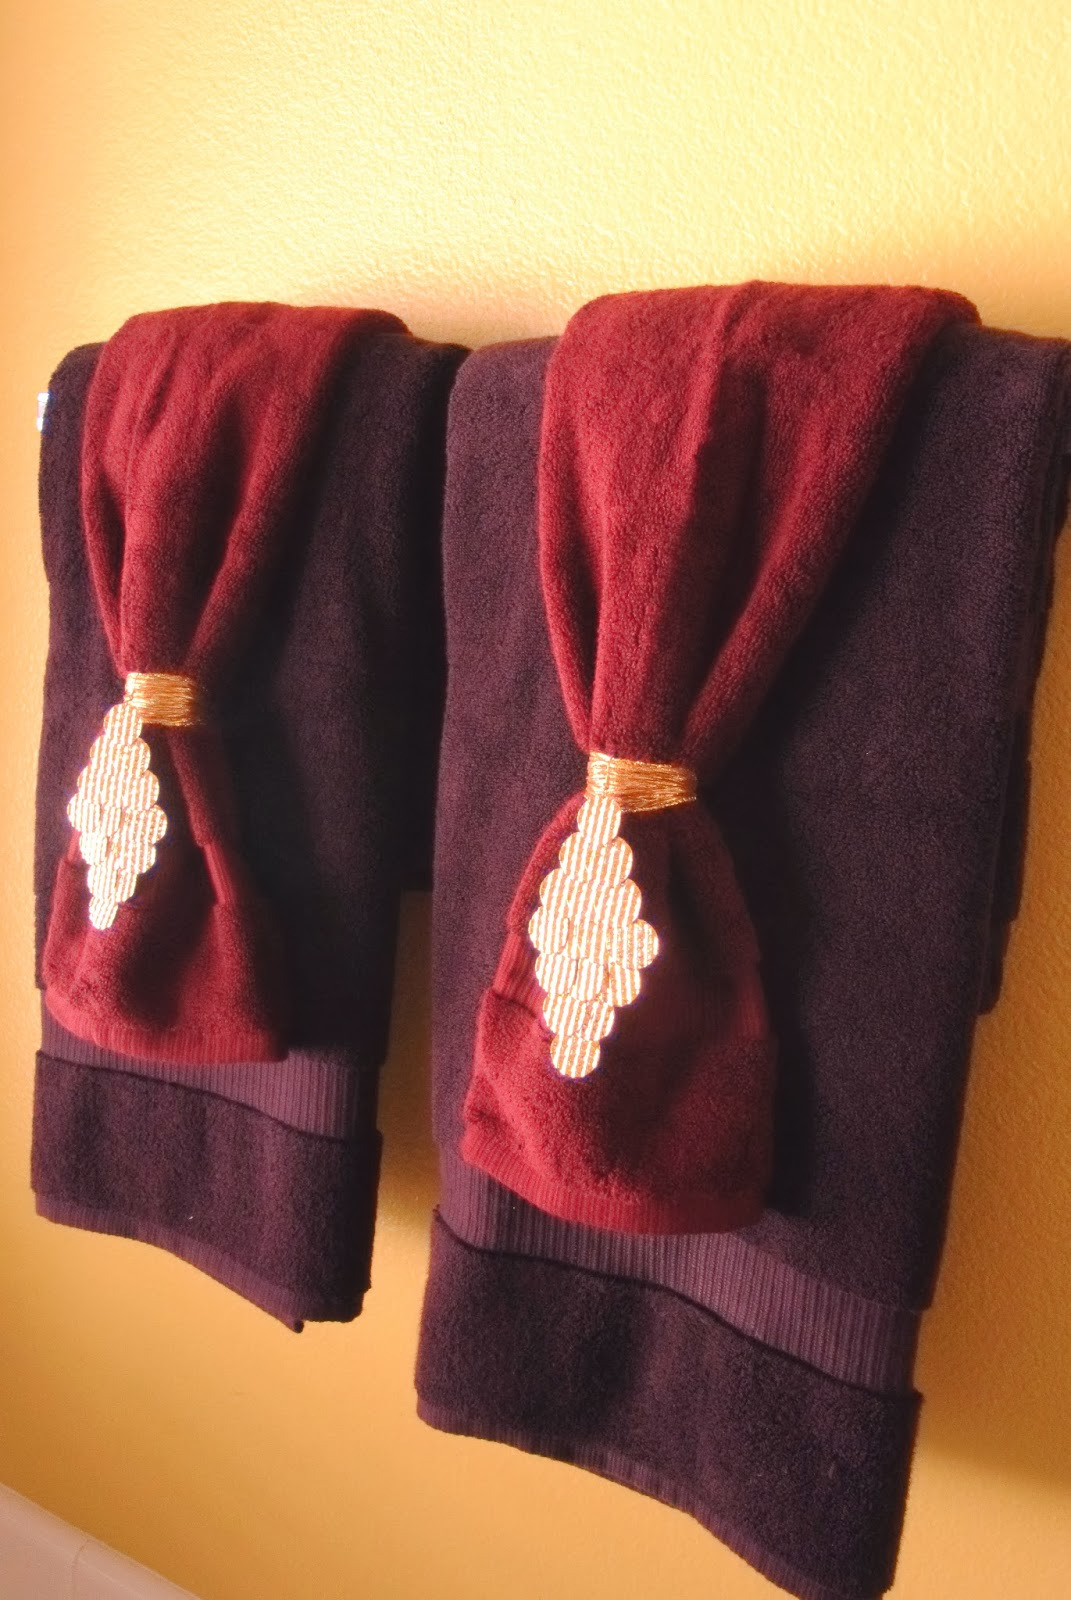 Decorative towels for Bathroom Ideas Awesome Home Design Ideas Decorative towels for Bathroom